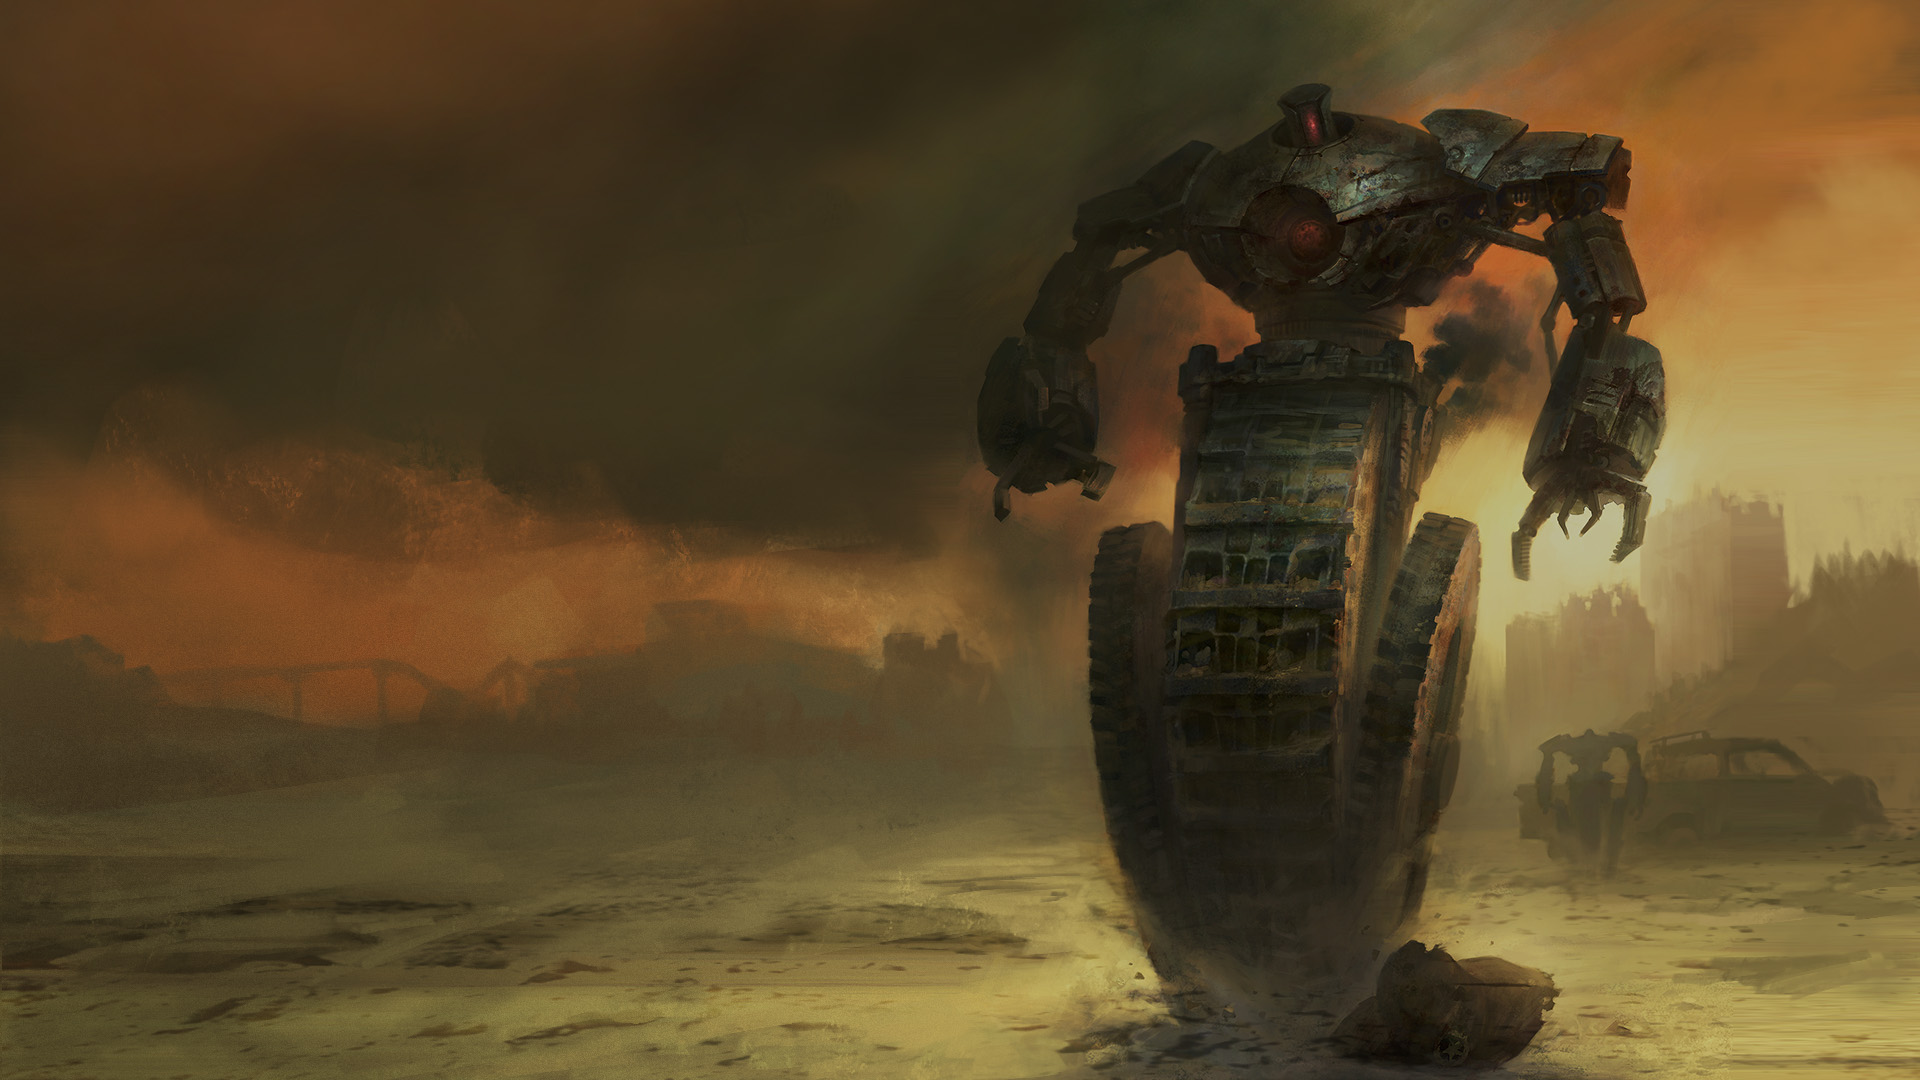 Nomad Iphone X Wallpaper Wasteland 2 Hd Wallpaper Background Image 1920x1080